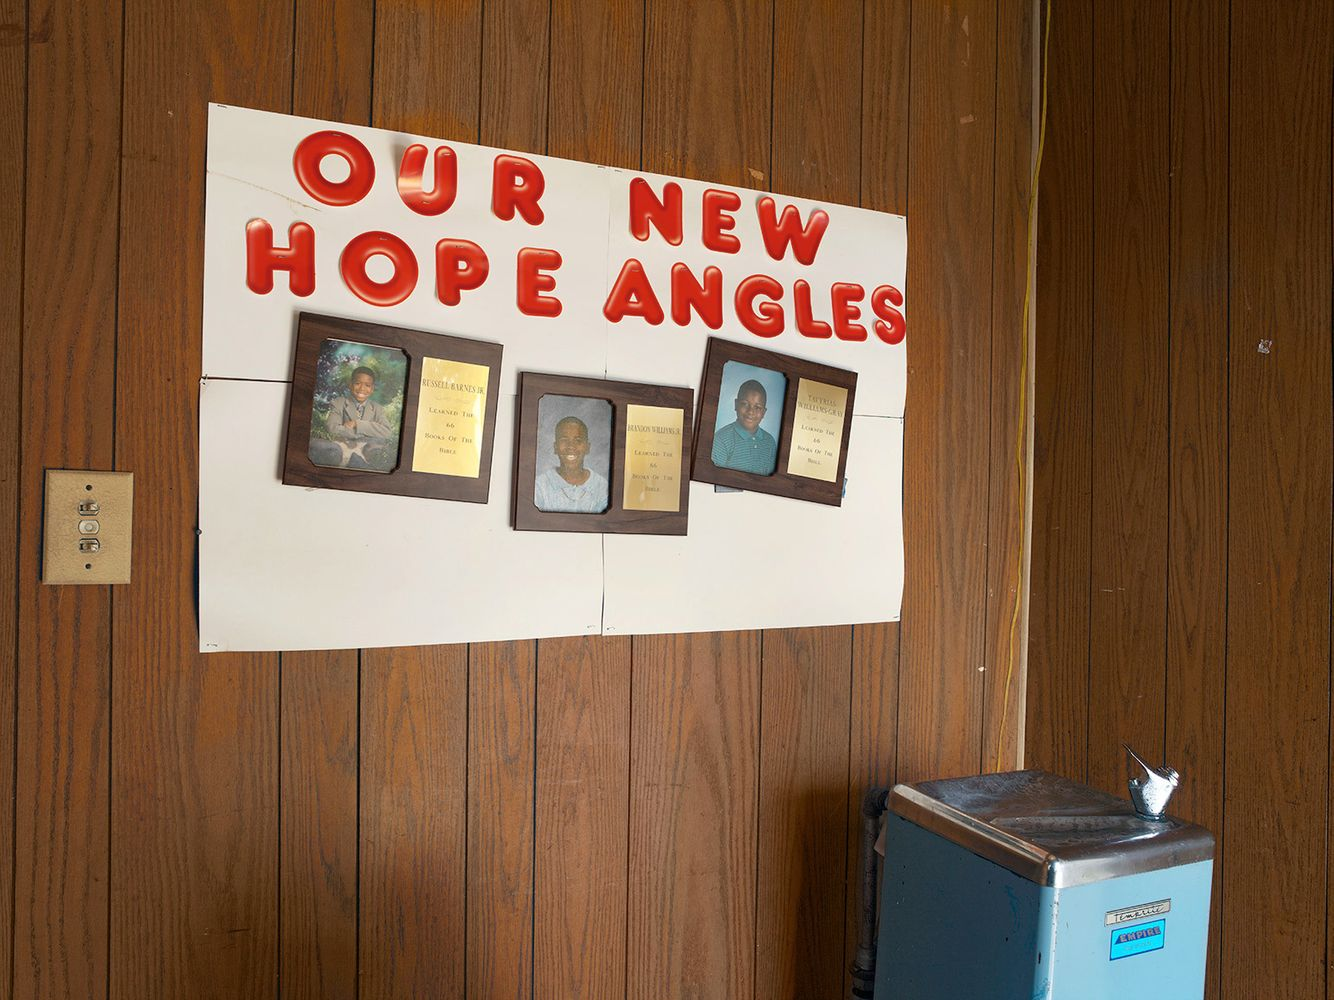 Plaques, Our New Hope Angles (sic), New Hope II M.B. Church 4924 S. Princeton, Chicago 2005